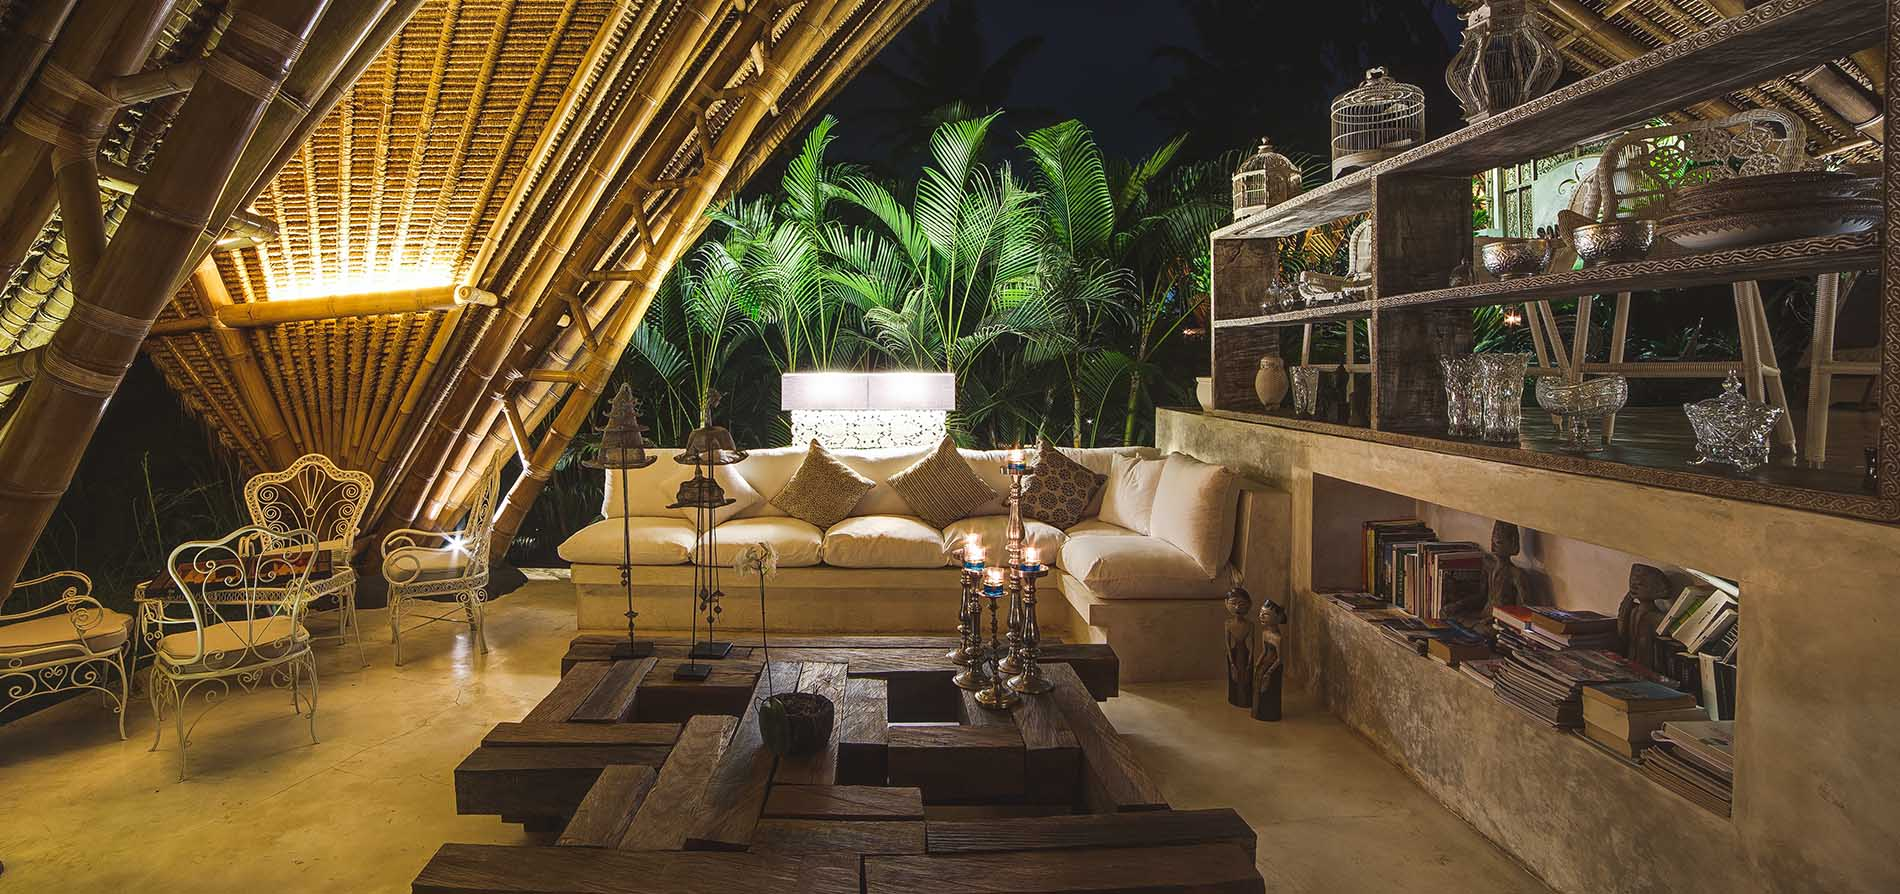 Luxury Resort In Bali The Best Boutique Hotel In Ubud